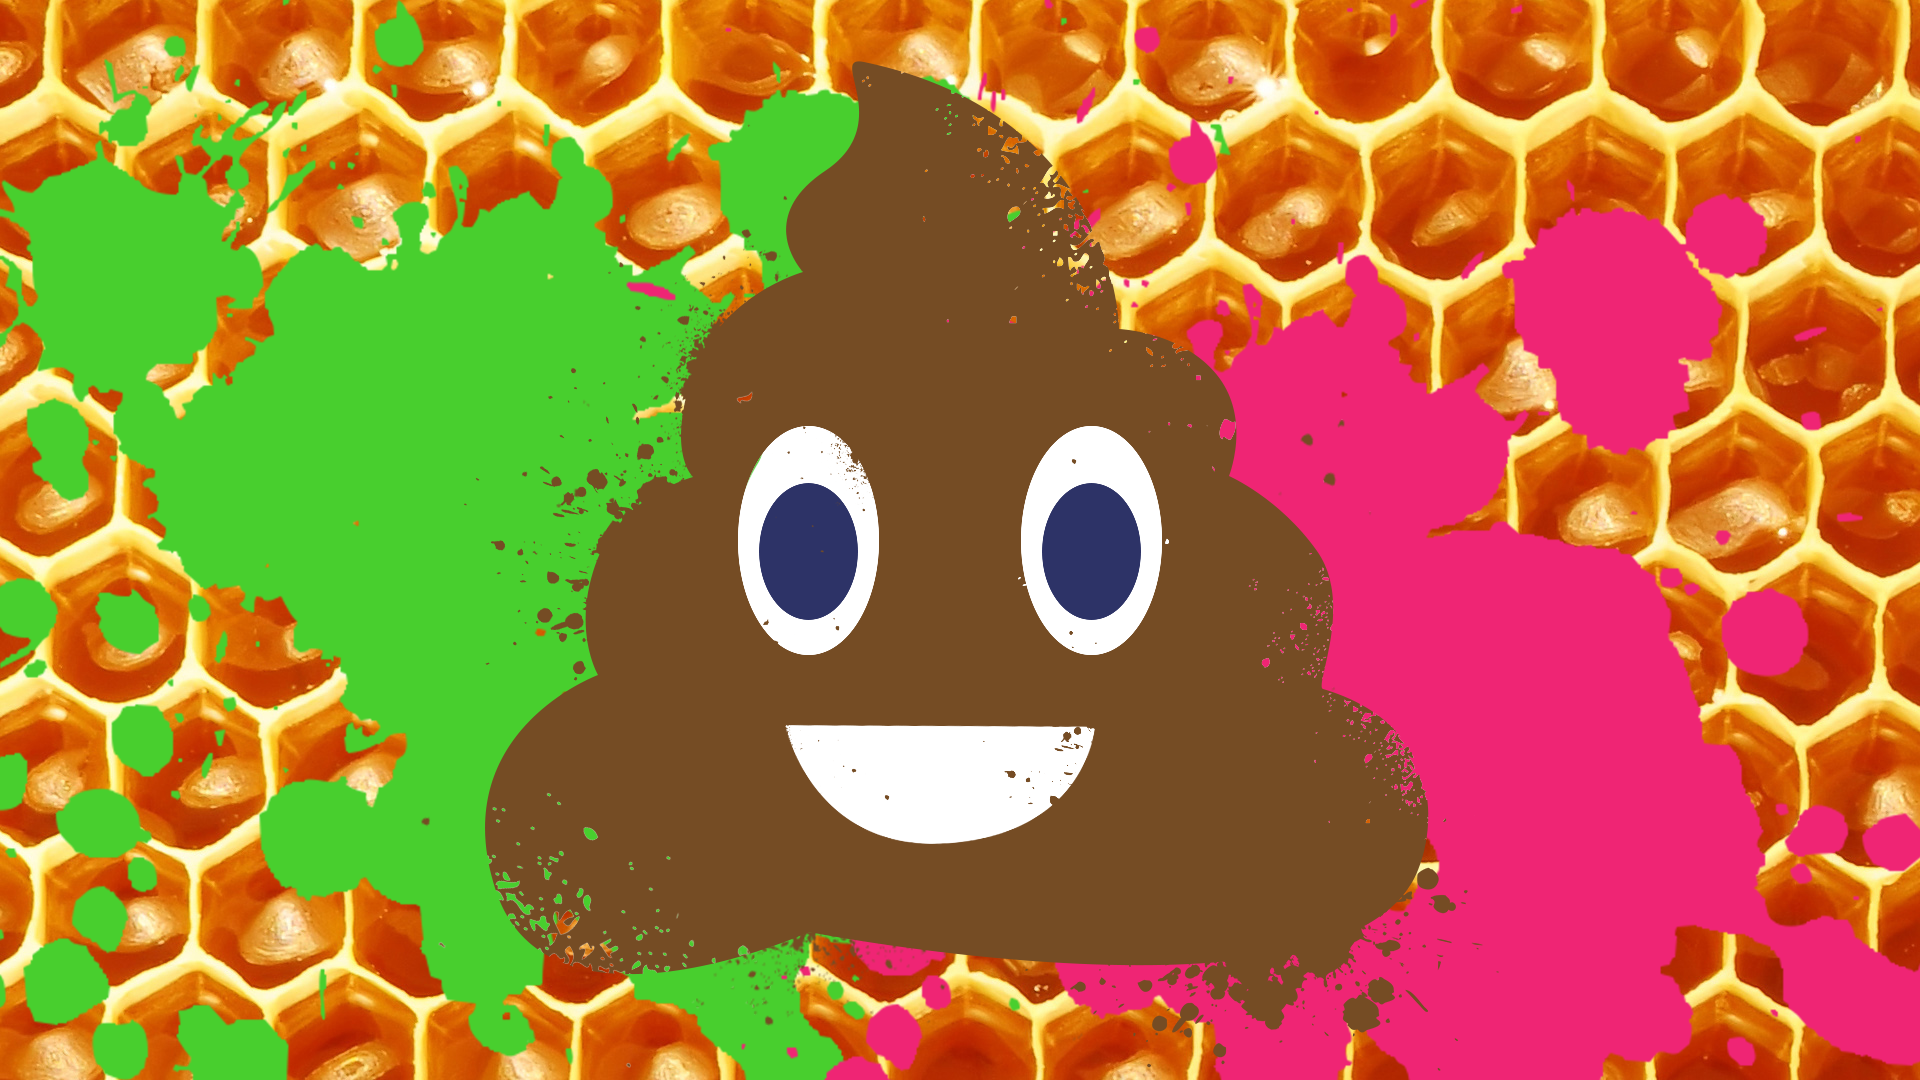 A smiling poo